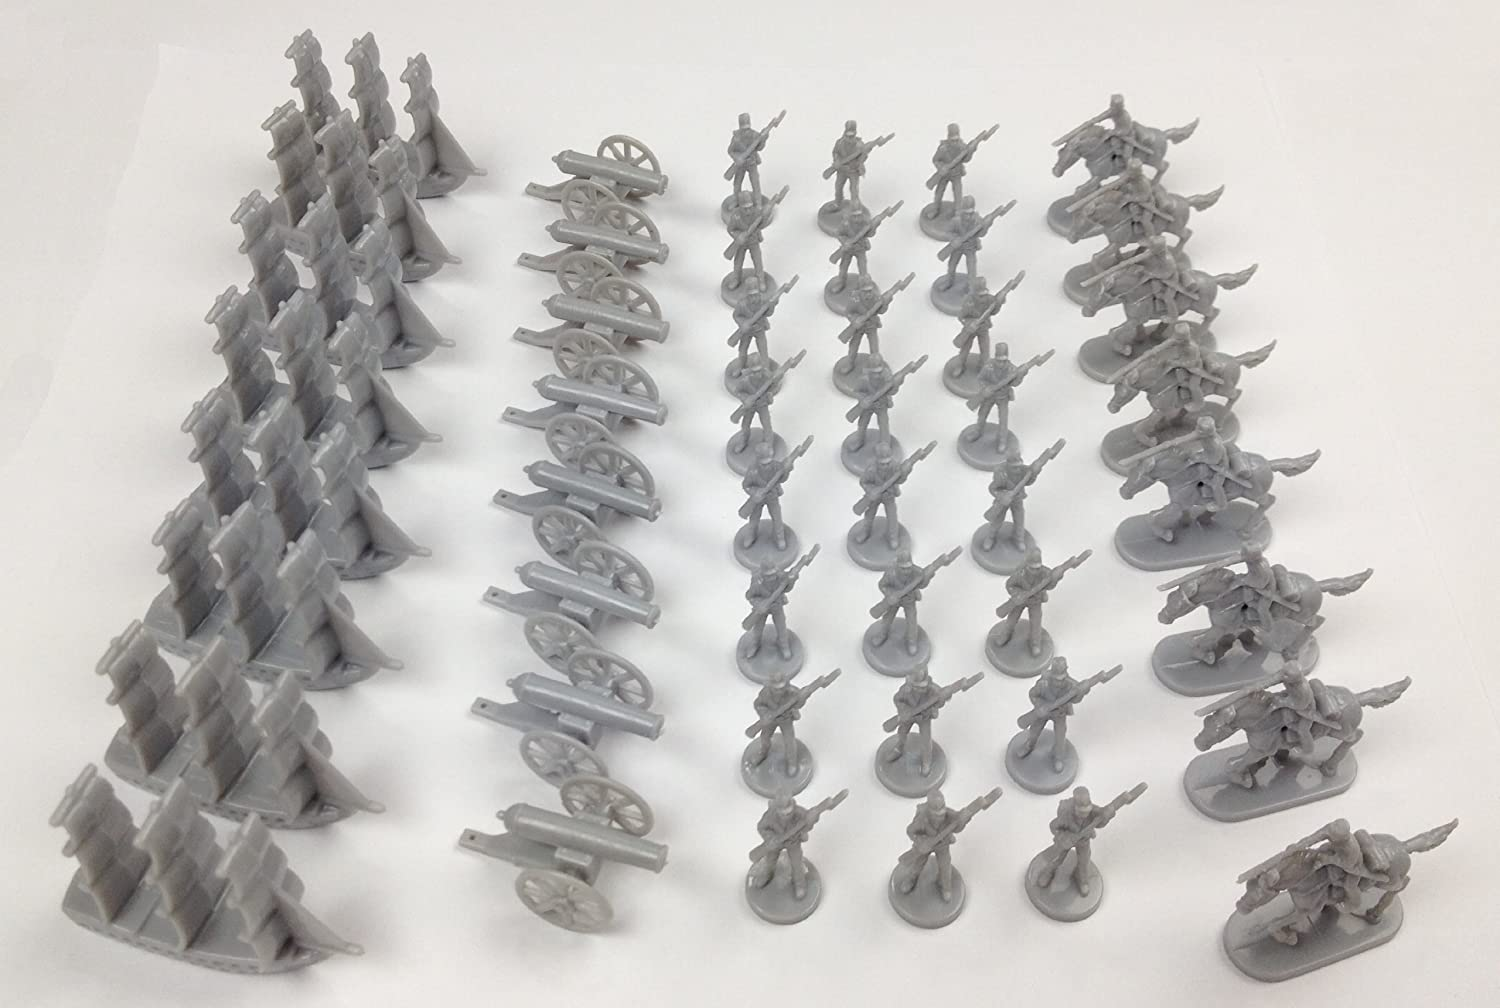 Artillery Ships Morrison Games : Plastic Toy Soldiers Set: Infantry Cavalry Grey Napoleonic /& Civil War Military Miniatures